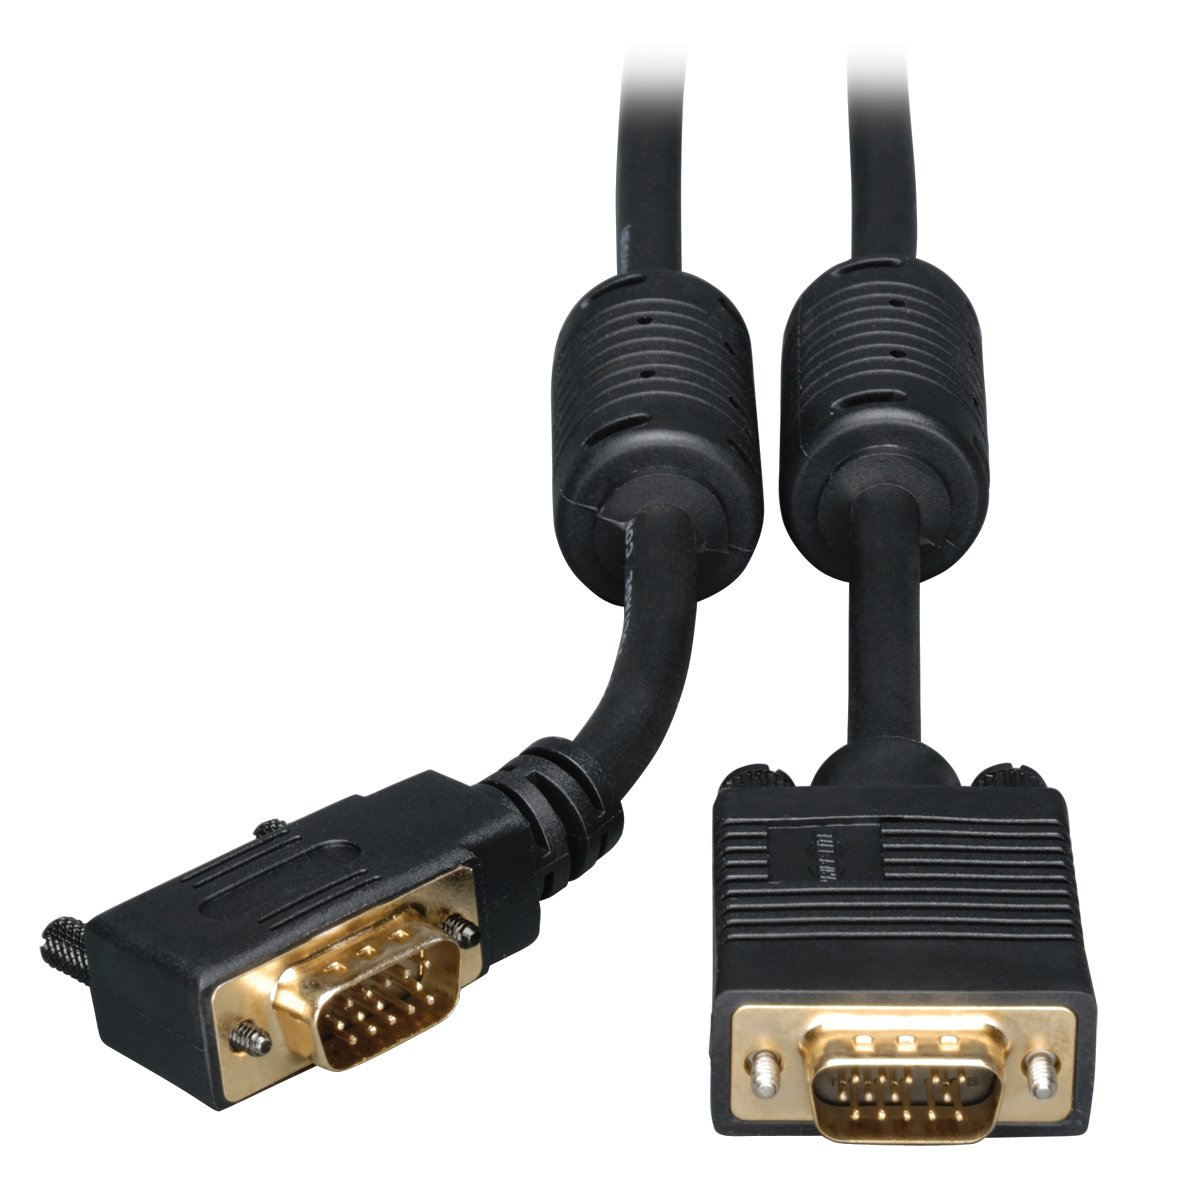 Vga Coax Right Angle Monitor Cable High Resolution Cable With Rgb Coax (Hd15 M/M TRIPP LITE P502-010-RA